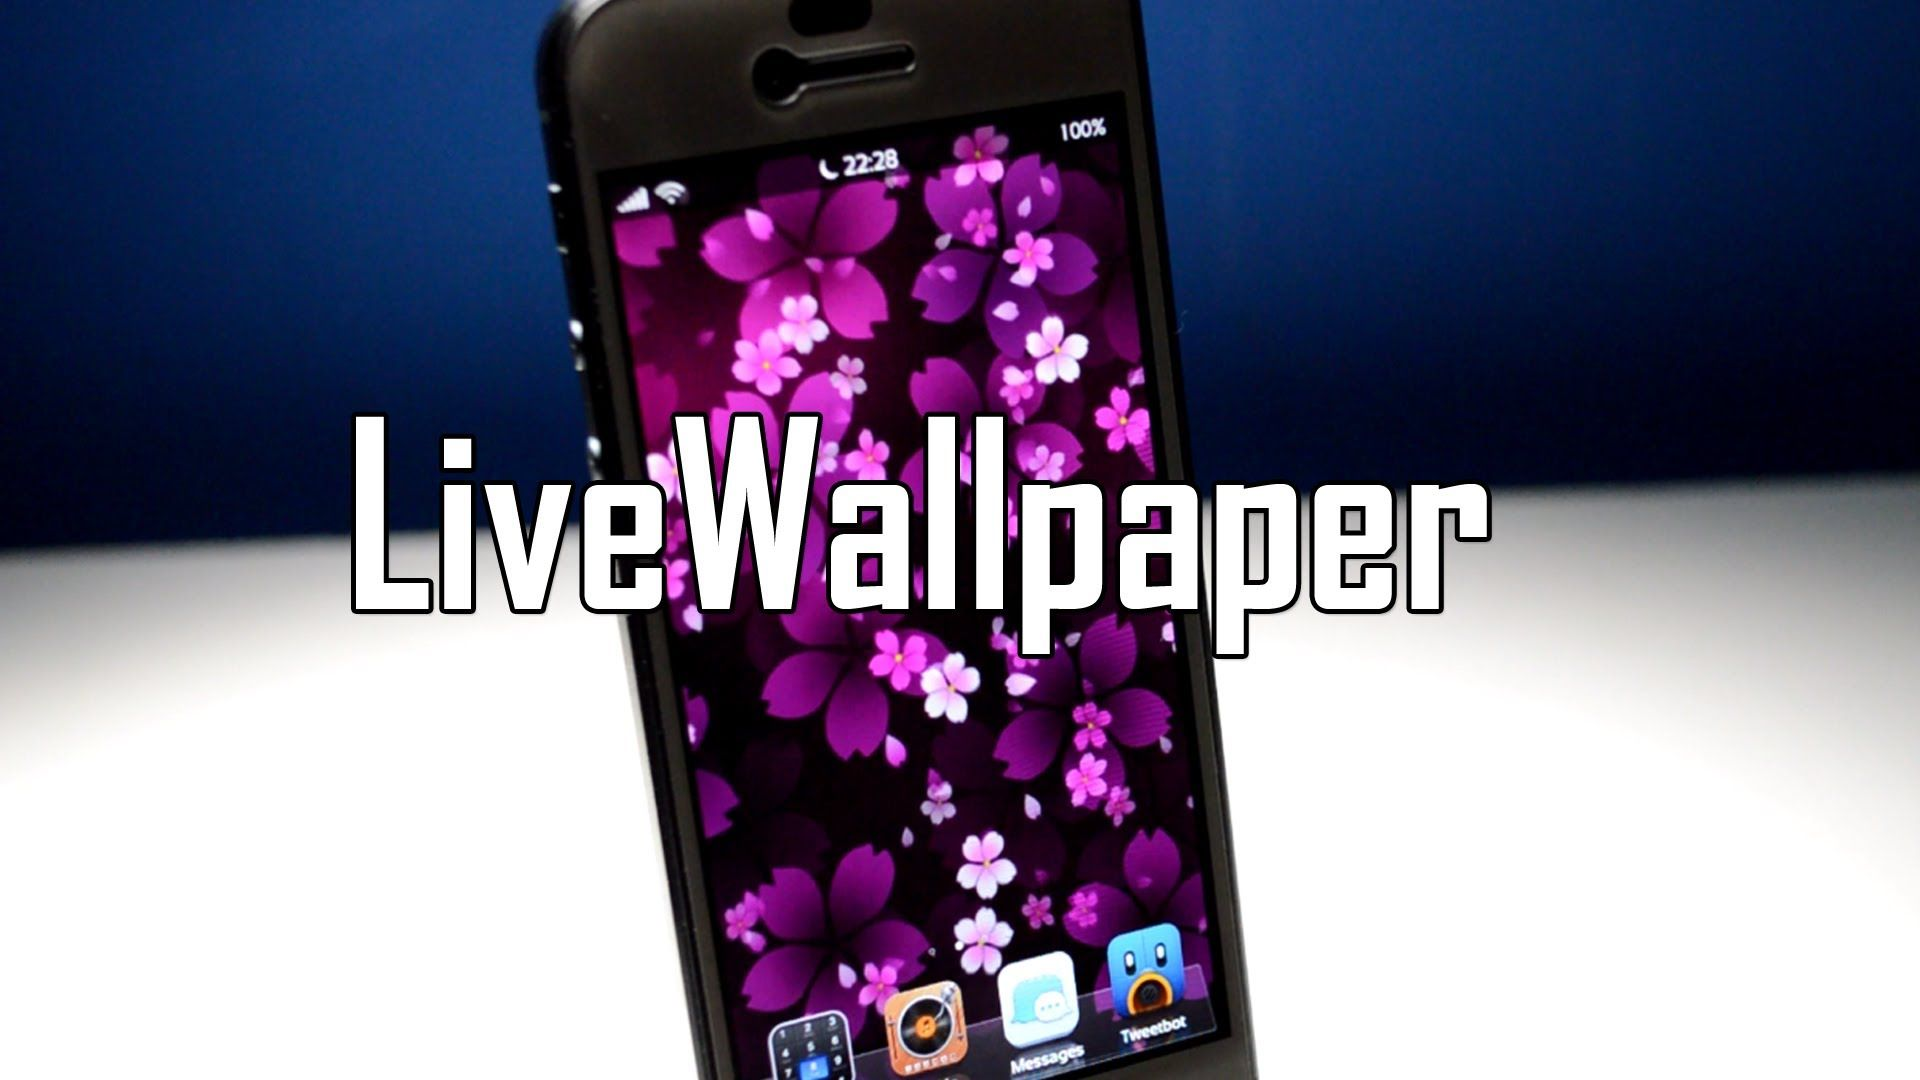 1920x1080 LiveWallpaper - Live Wallpapers & Scrolling Background On iPhone 5 .